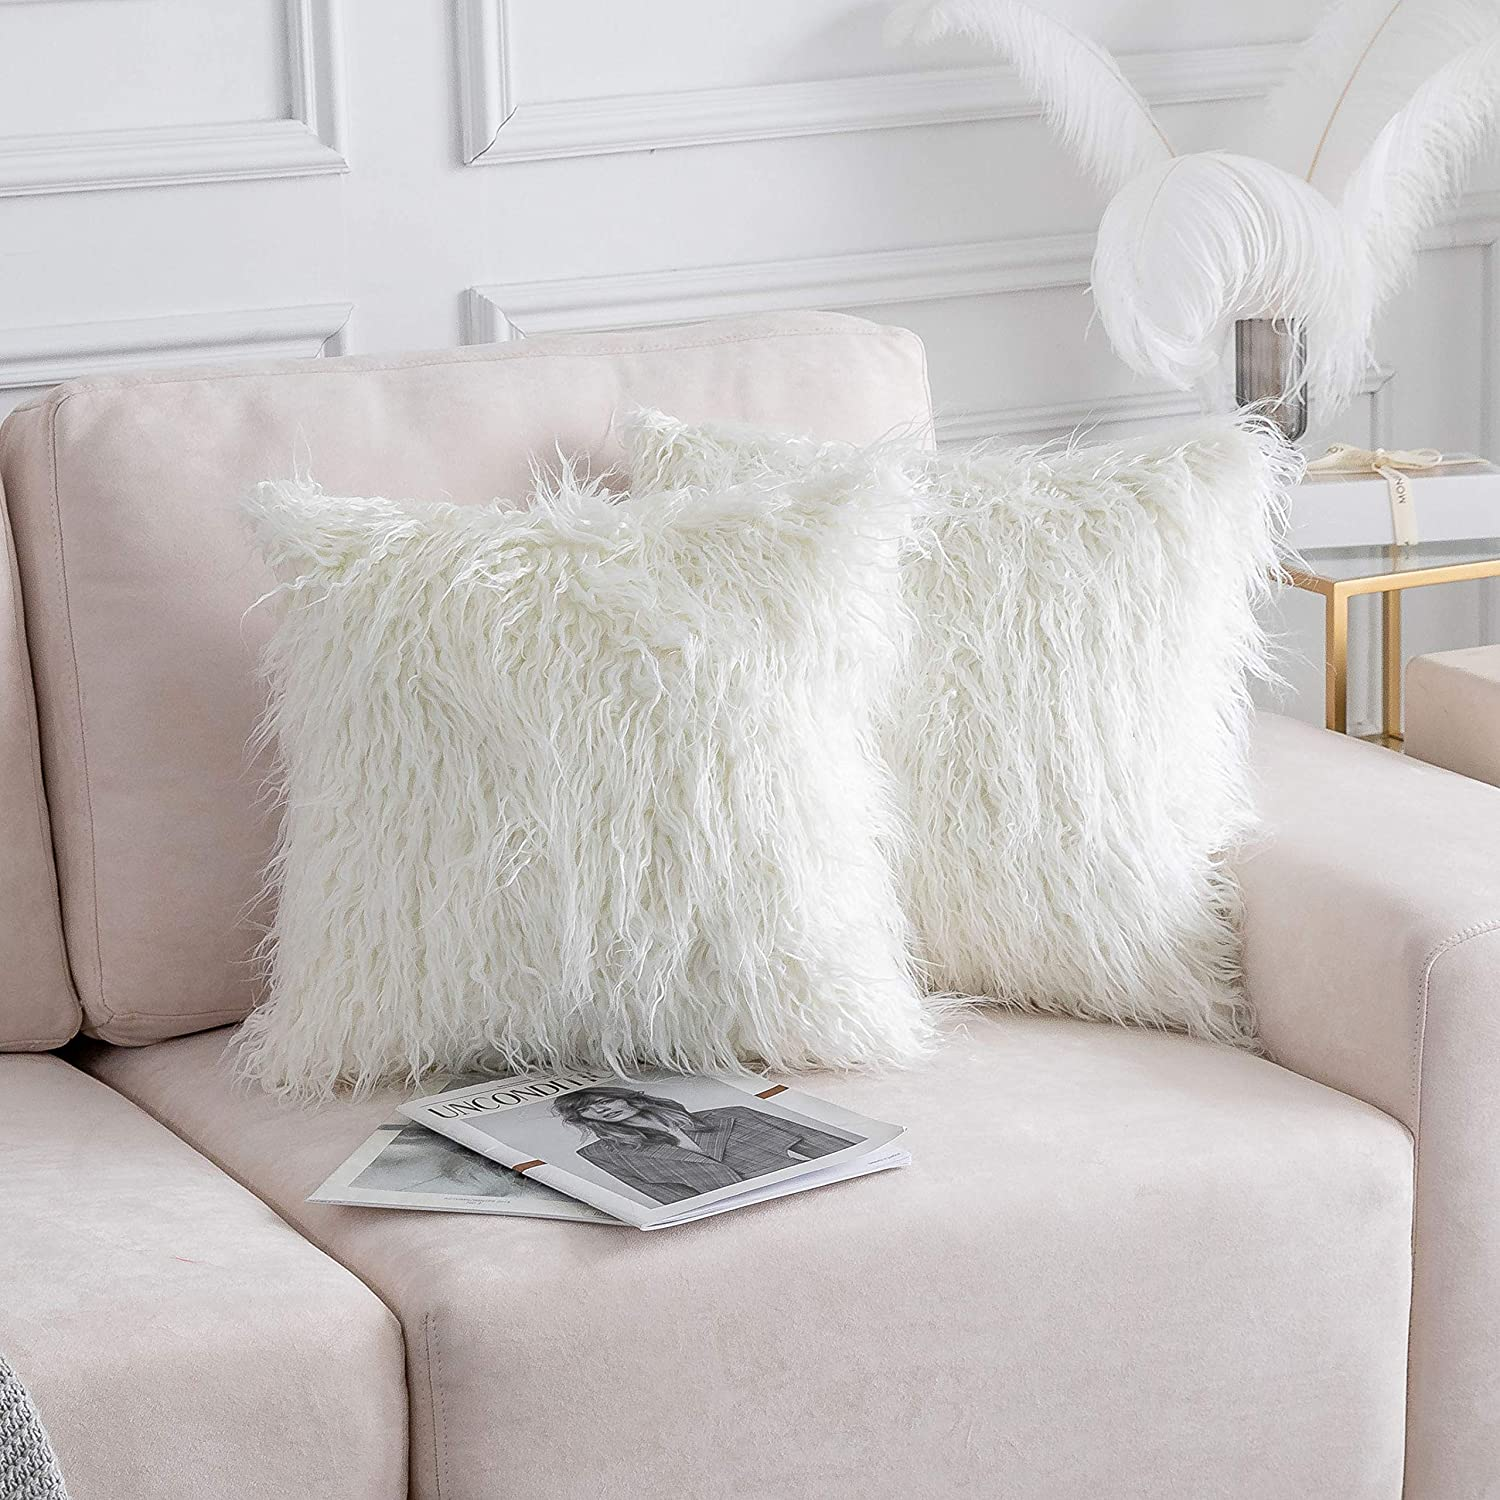 Home Brilliant Merino Style Mongolian Decorative Faux Fur Throw Pillow Covers Cushion Pillowcases for Couch, 20x20inches, 50cm, Set of 2, Off White